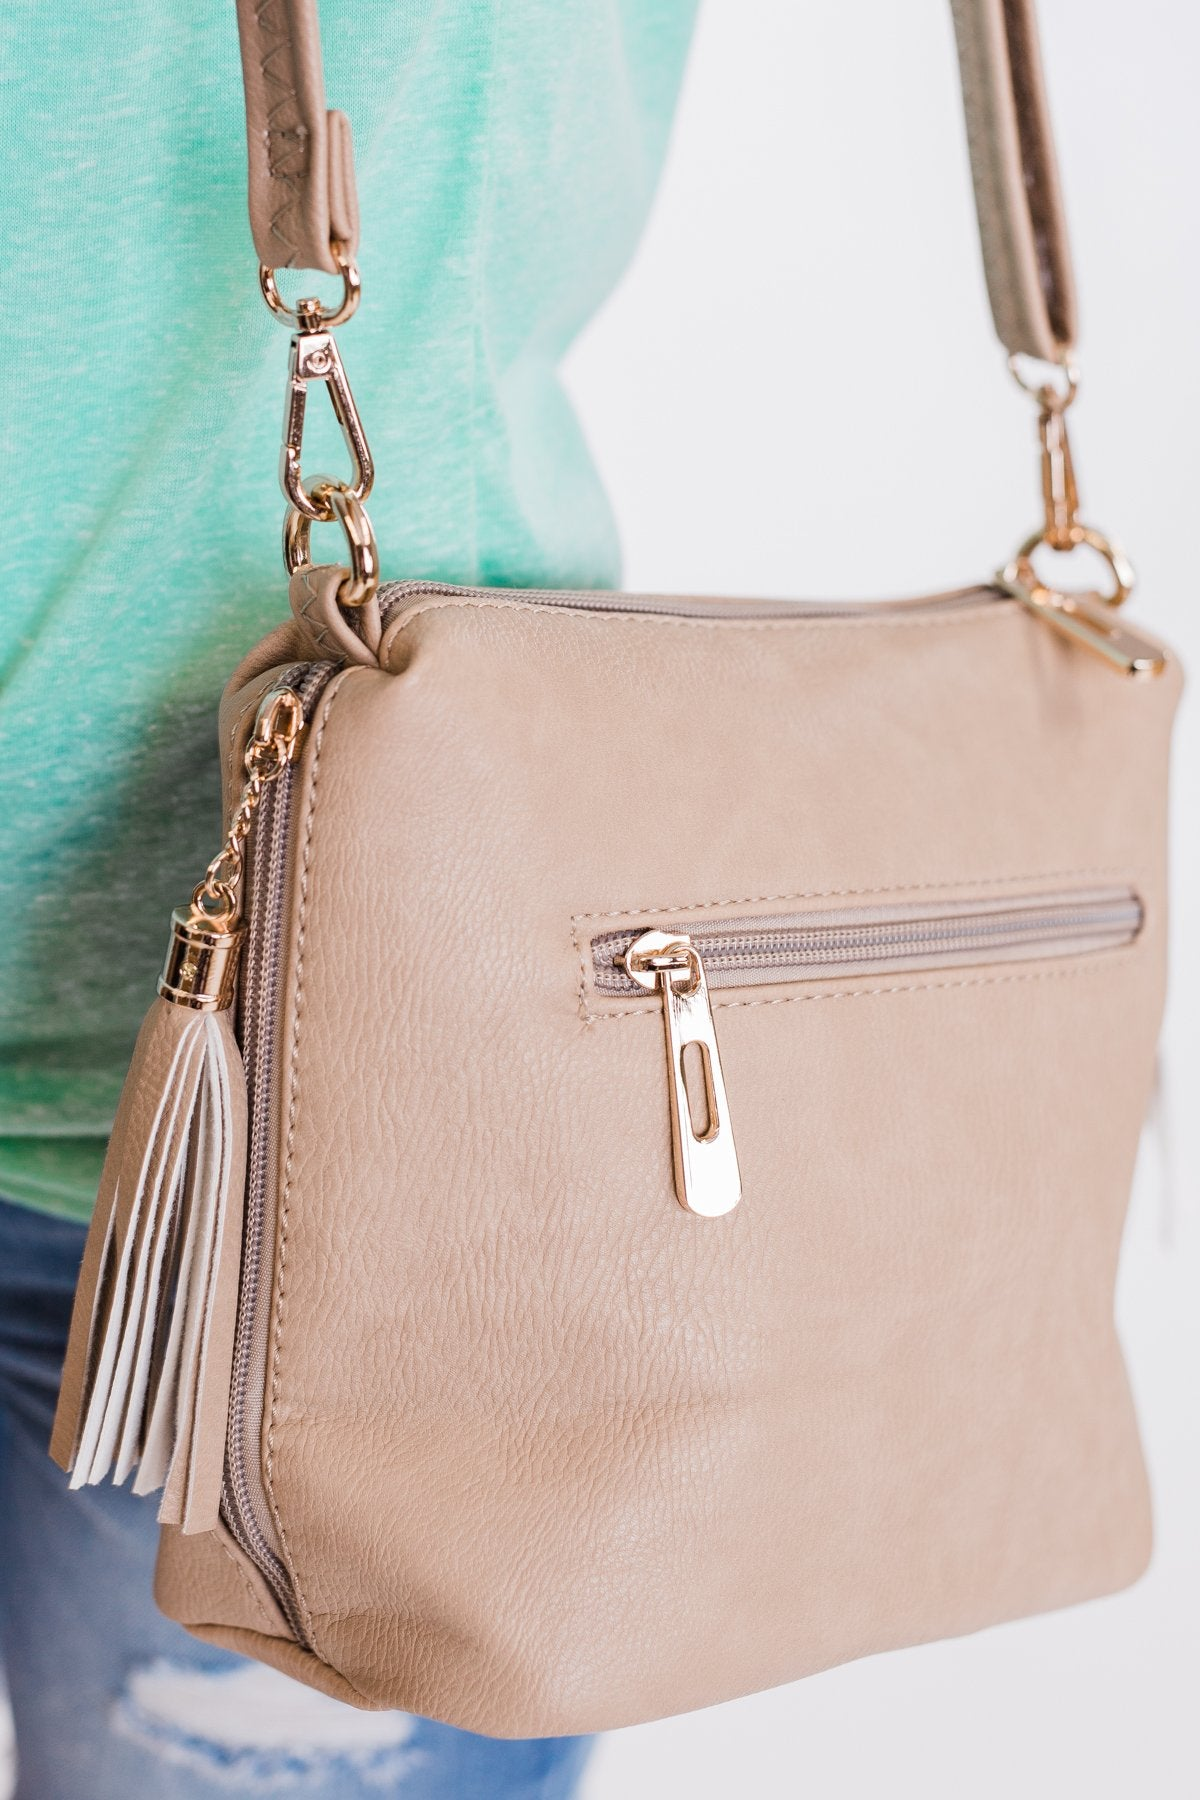 Side Zipper & Tassel Purse- Light Beige